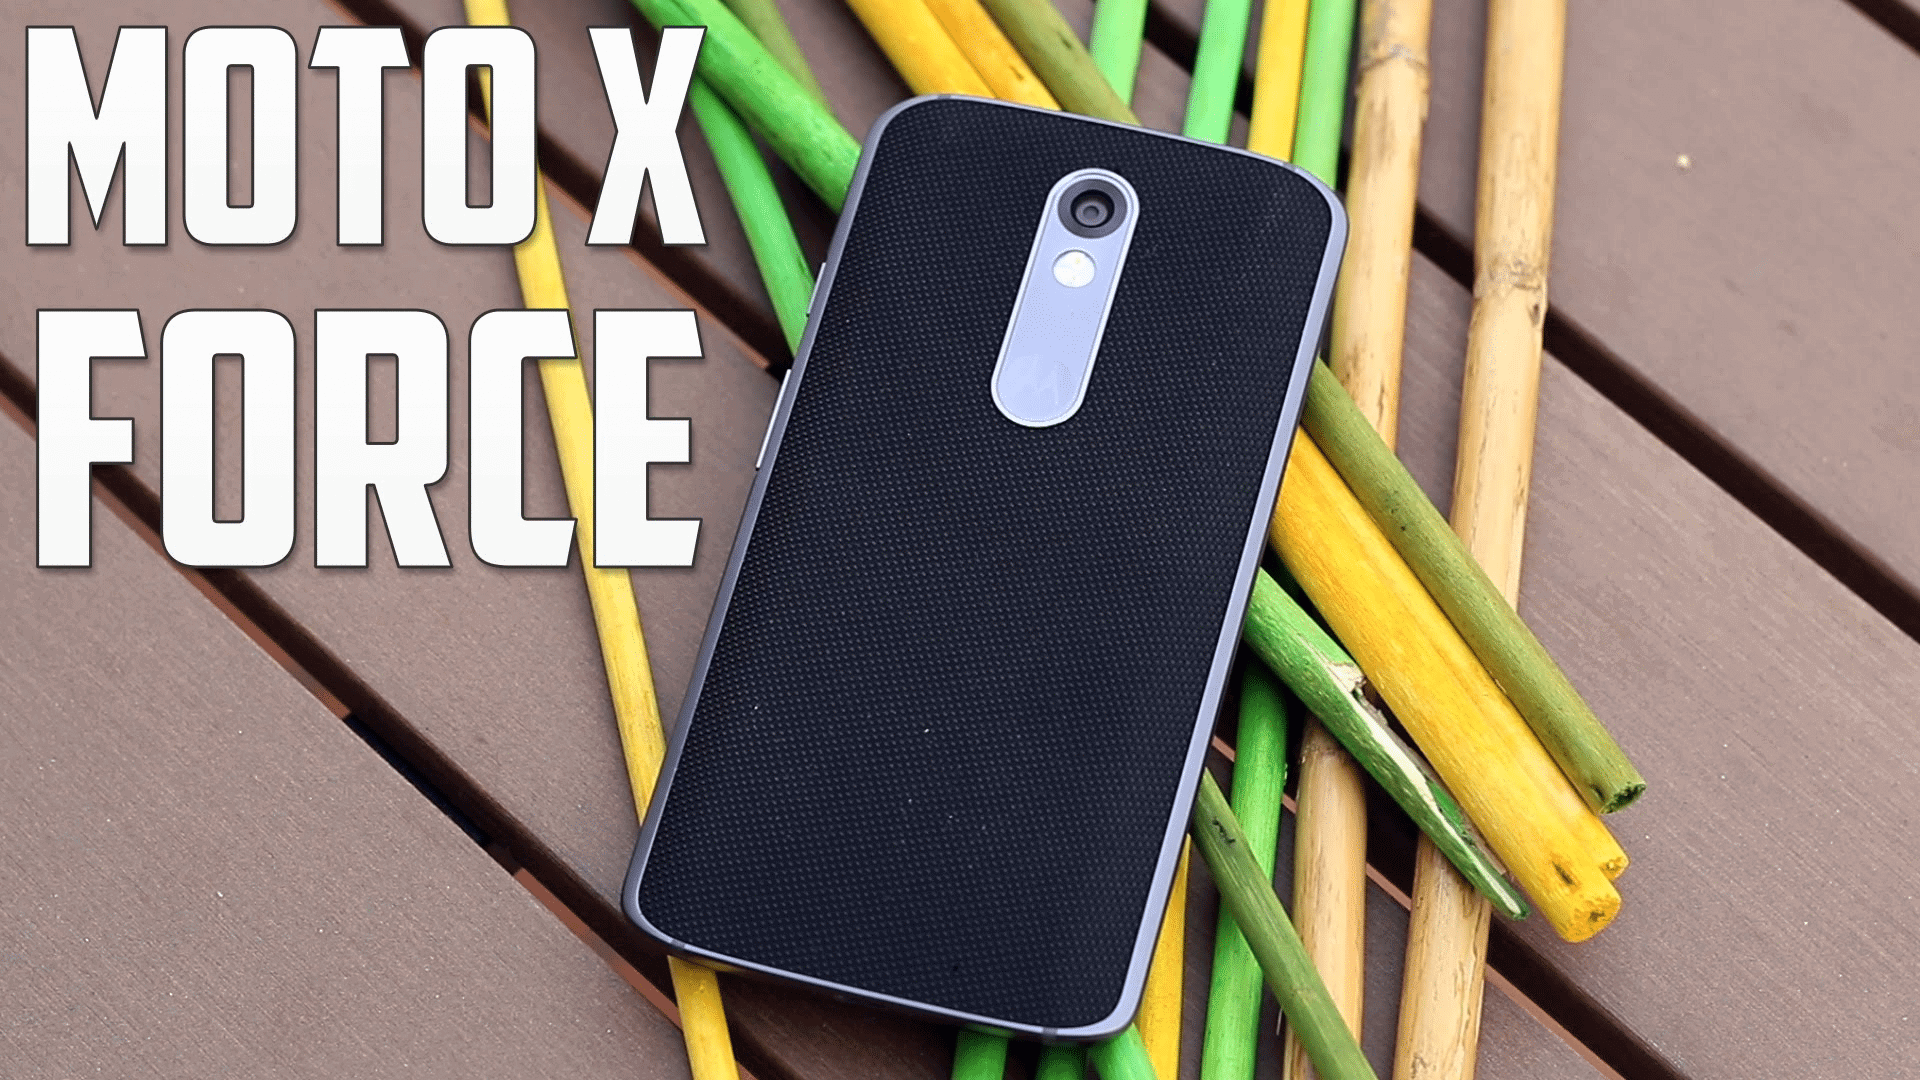 How To Update Moto X Force To Android 7.0 Nougat Official Firmware 1